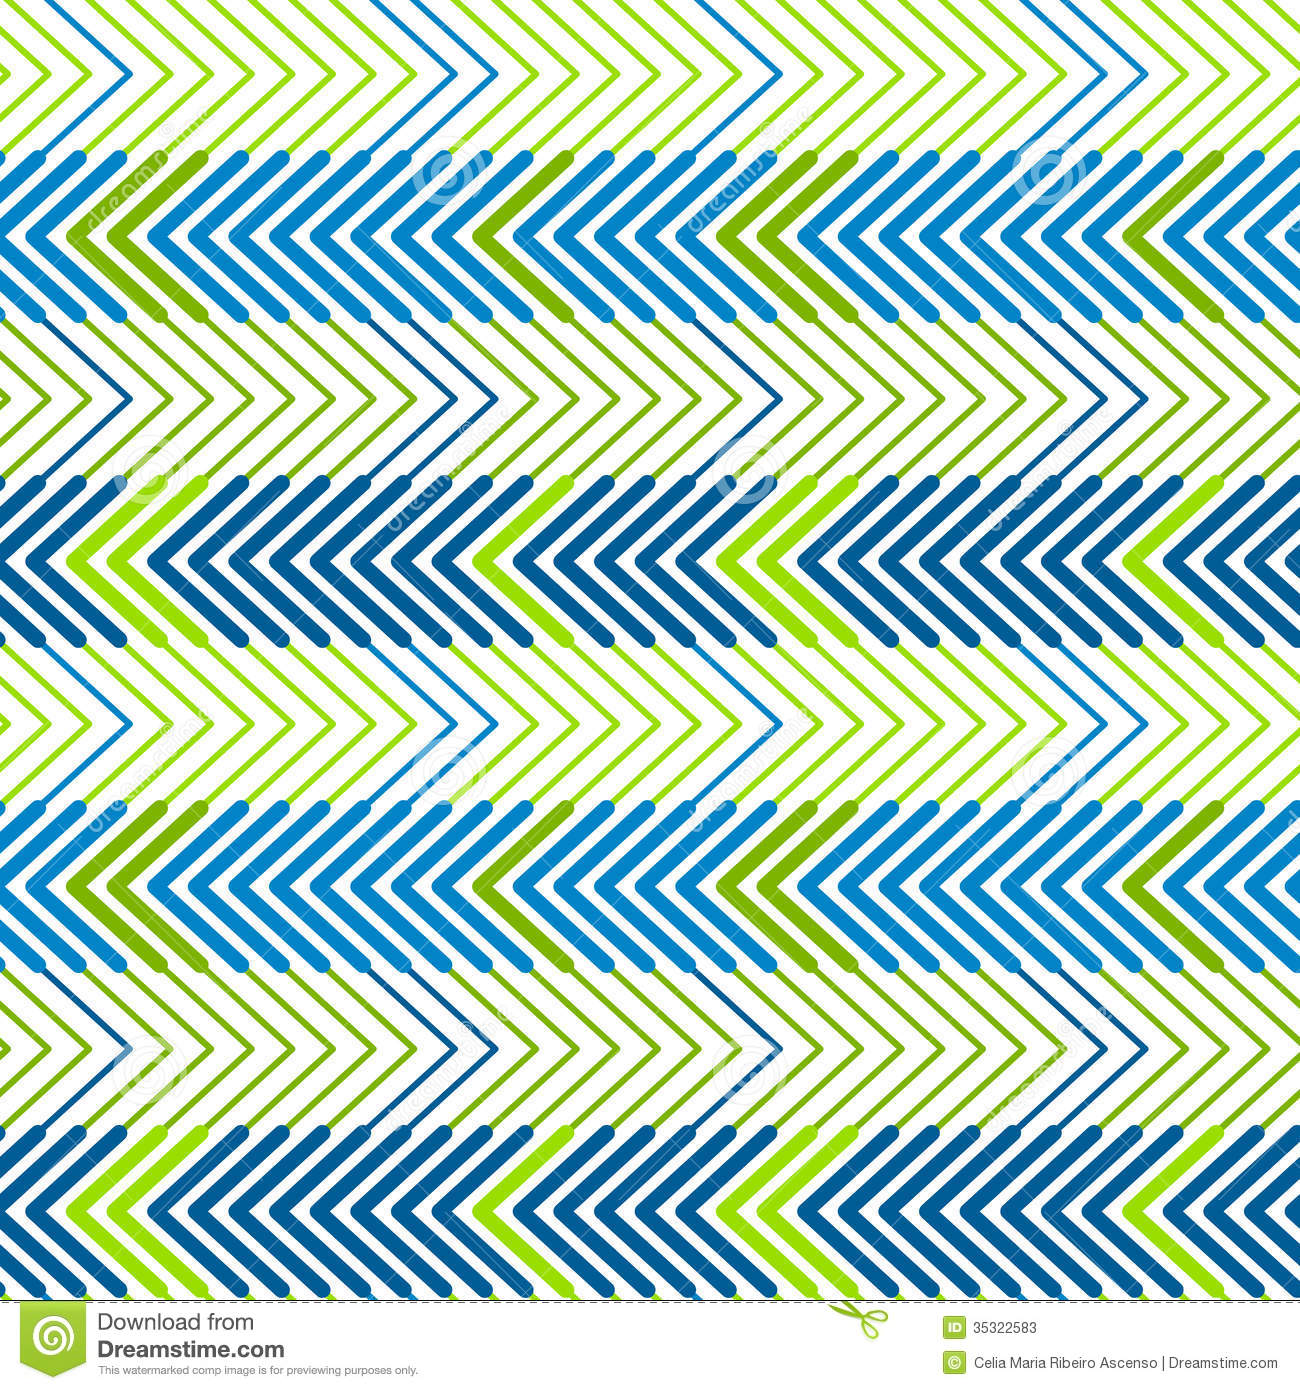 graphic zigzag lines seamless pattern background zig zag stripes tile 1300x1390